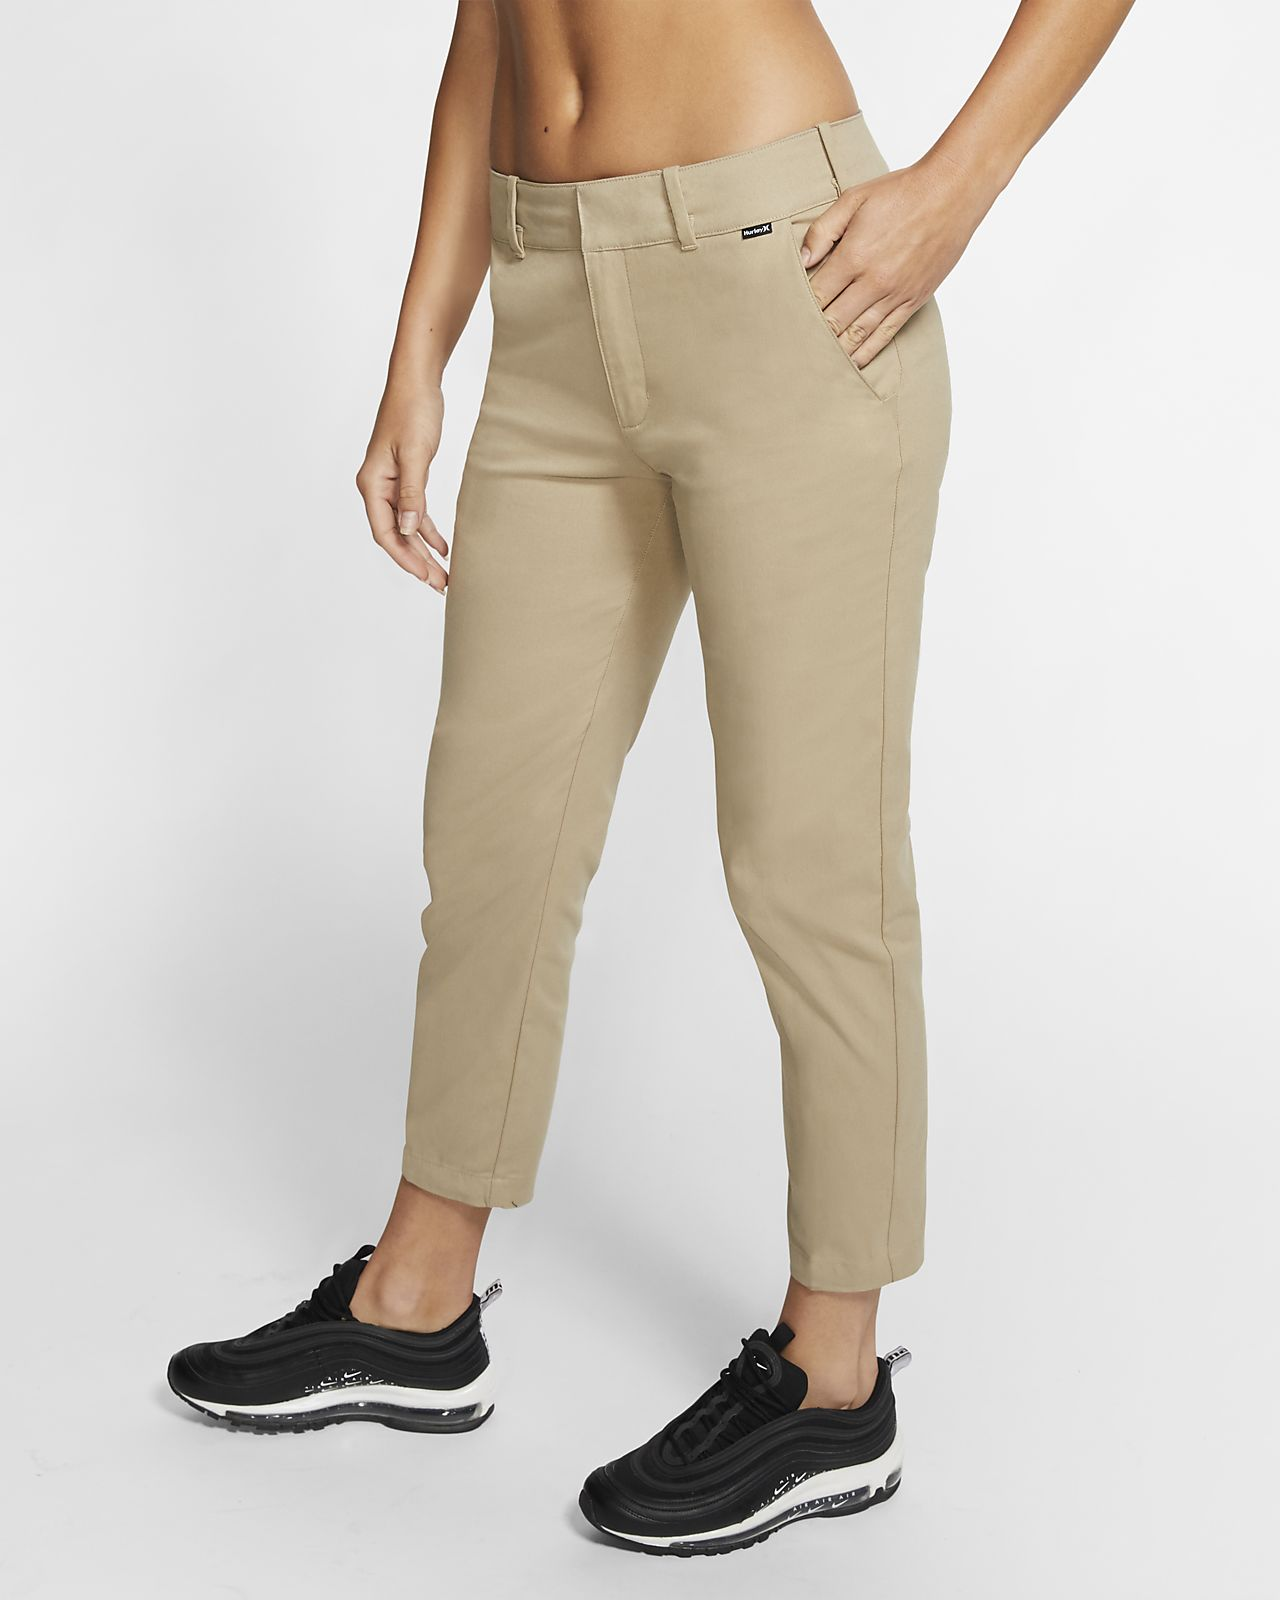 Hurley Lowrider Women's Chino Trousers